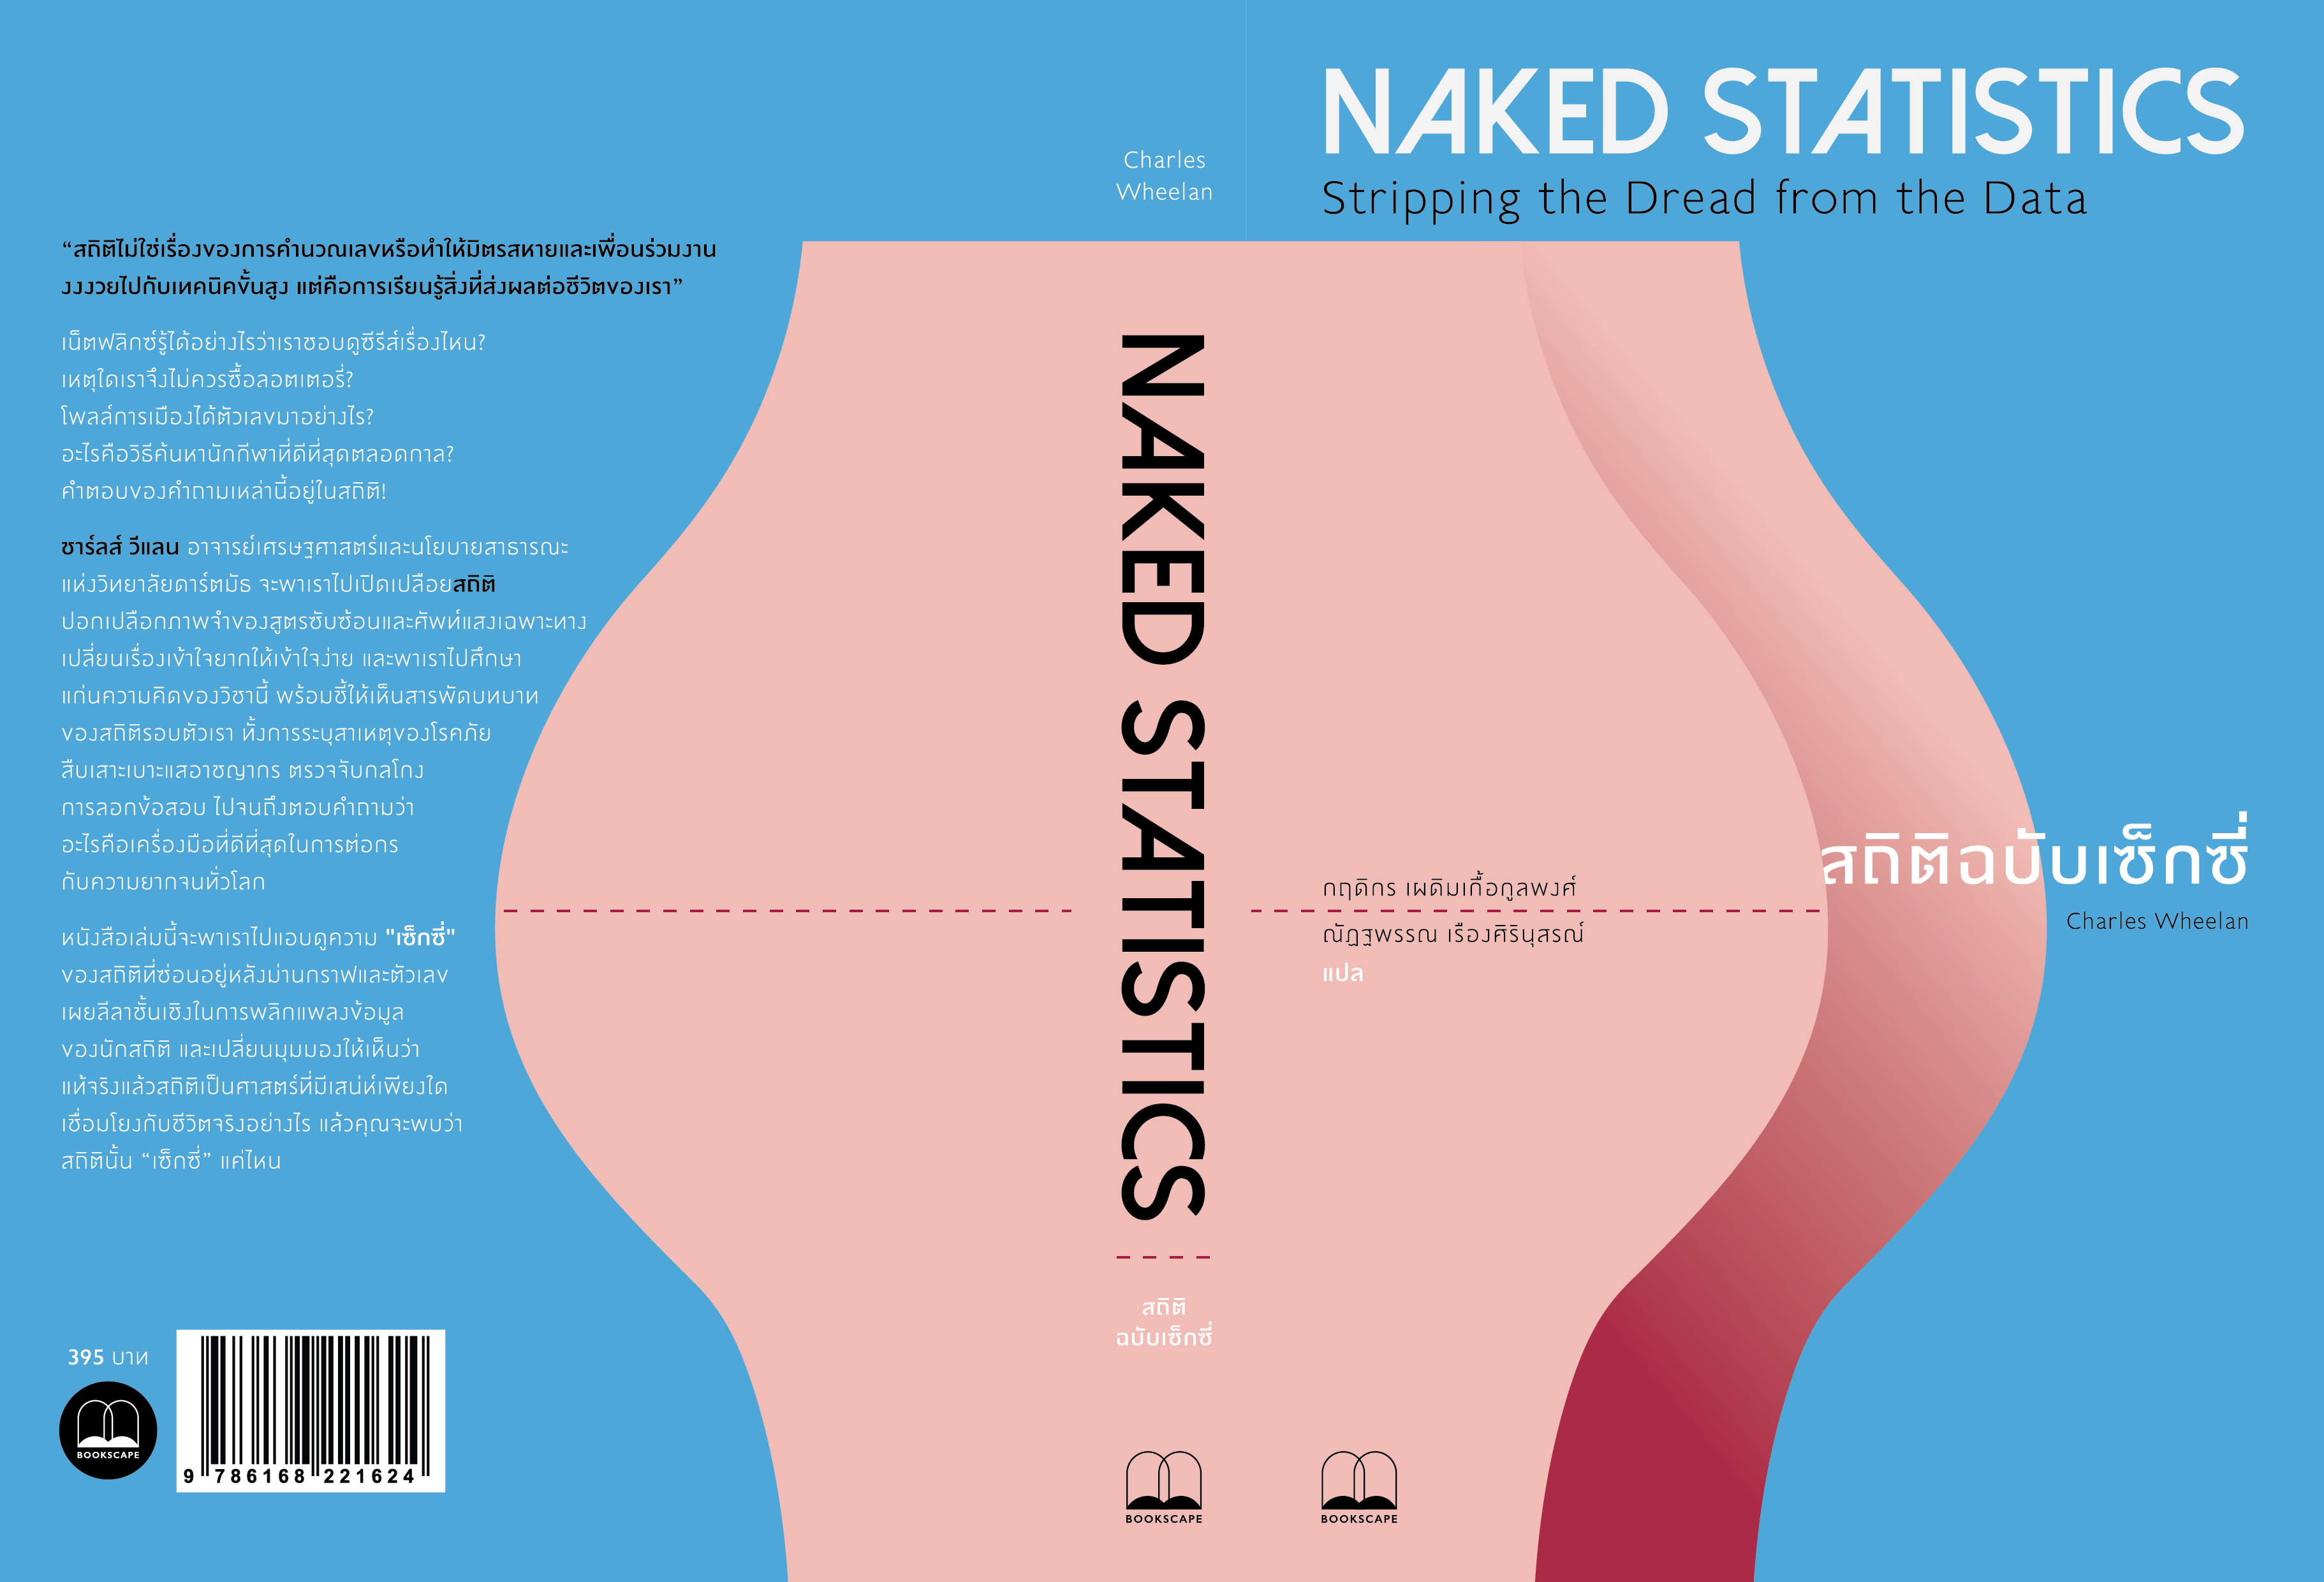 Naked Statistics by Charles Wheelan - Review - The New